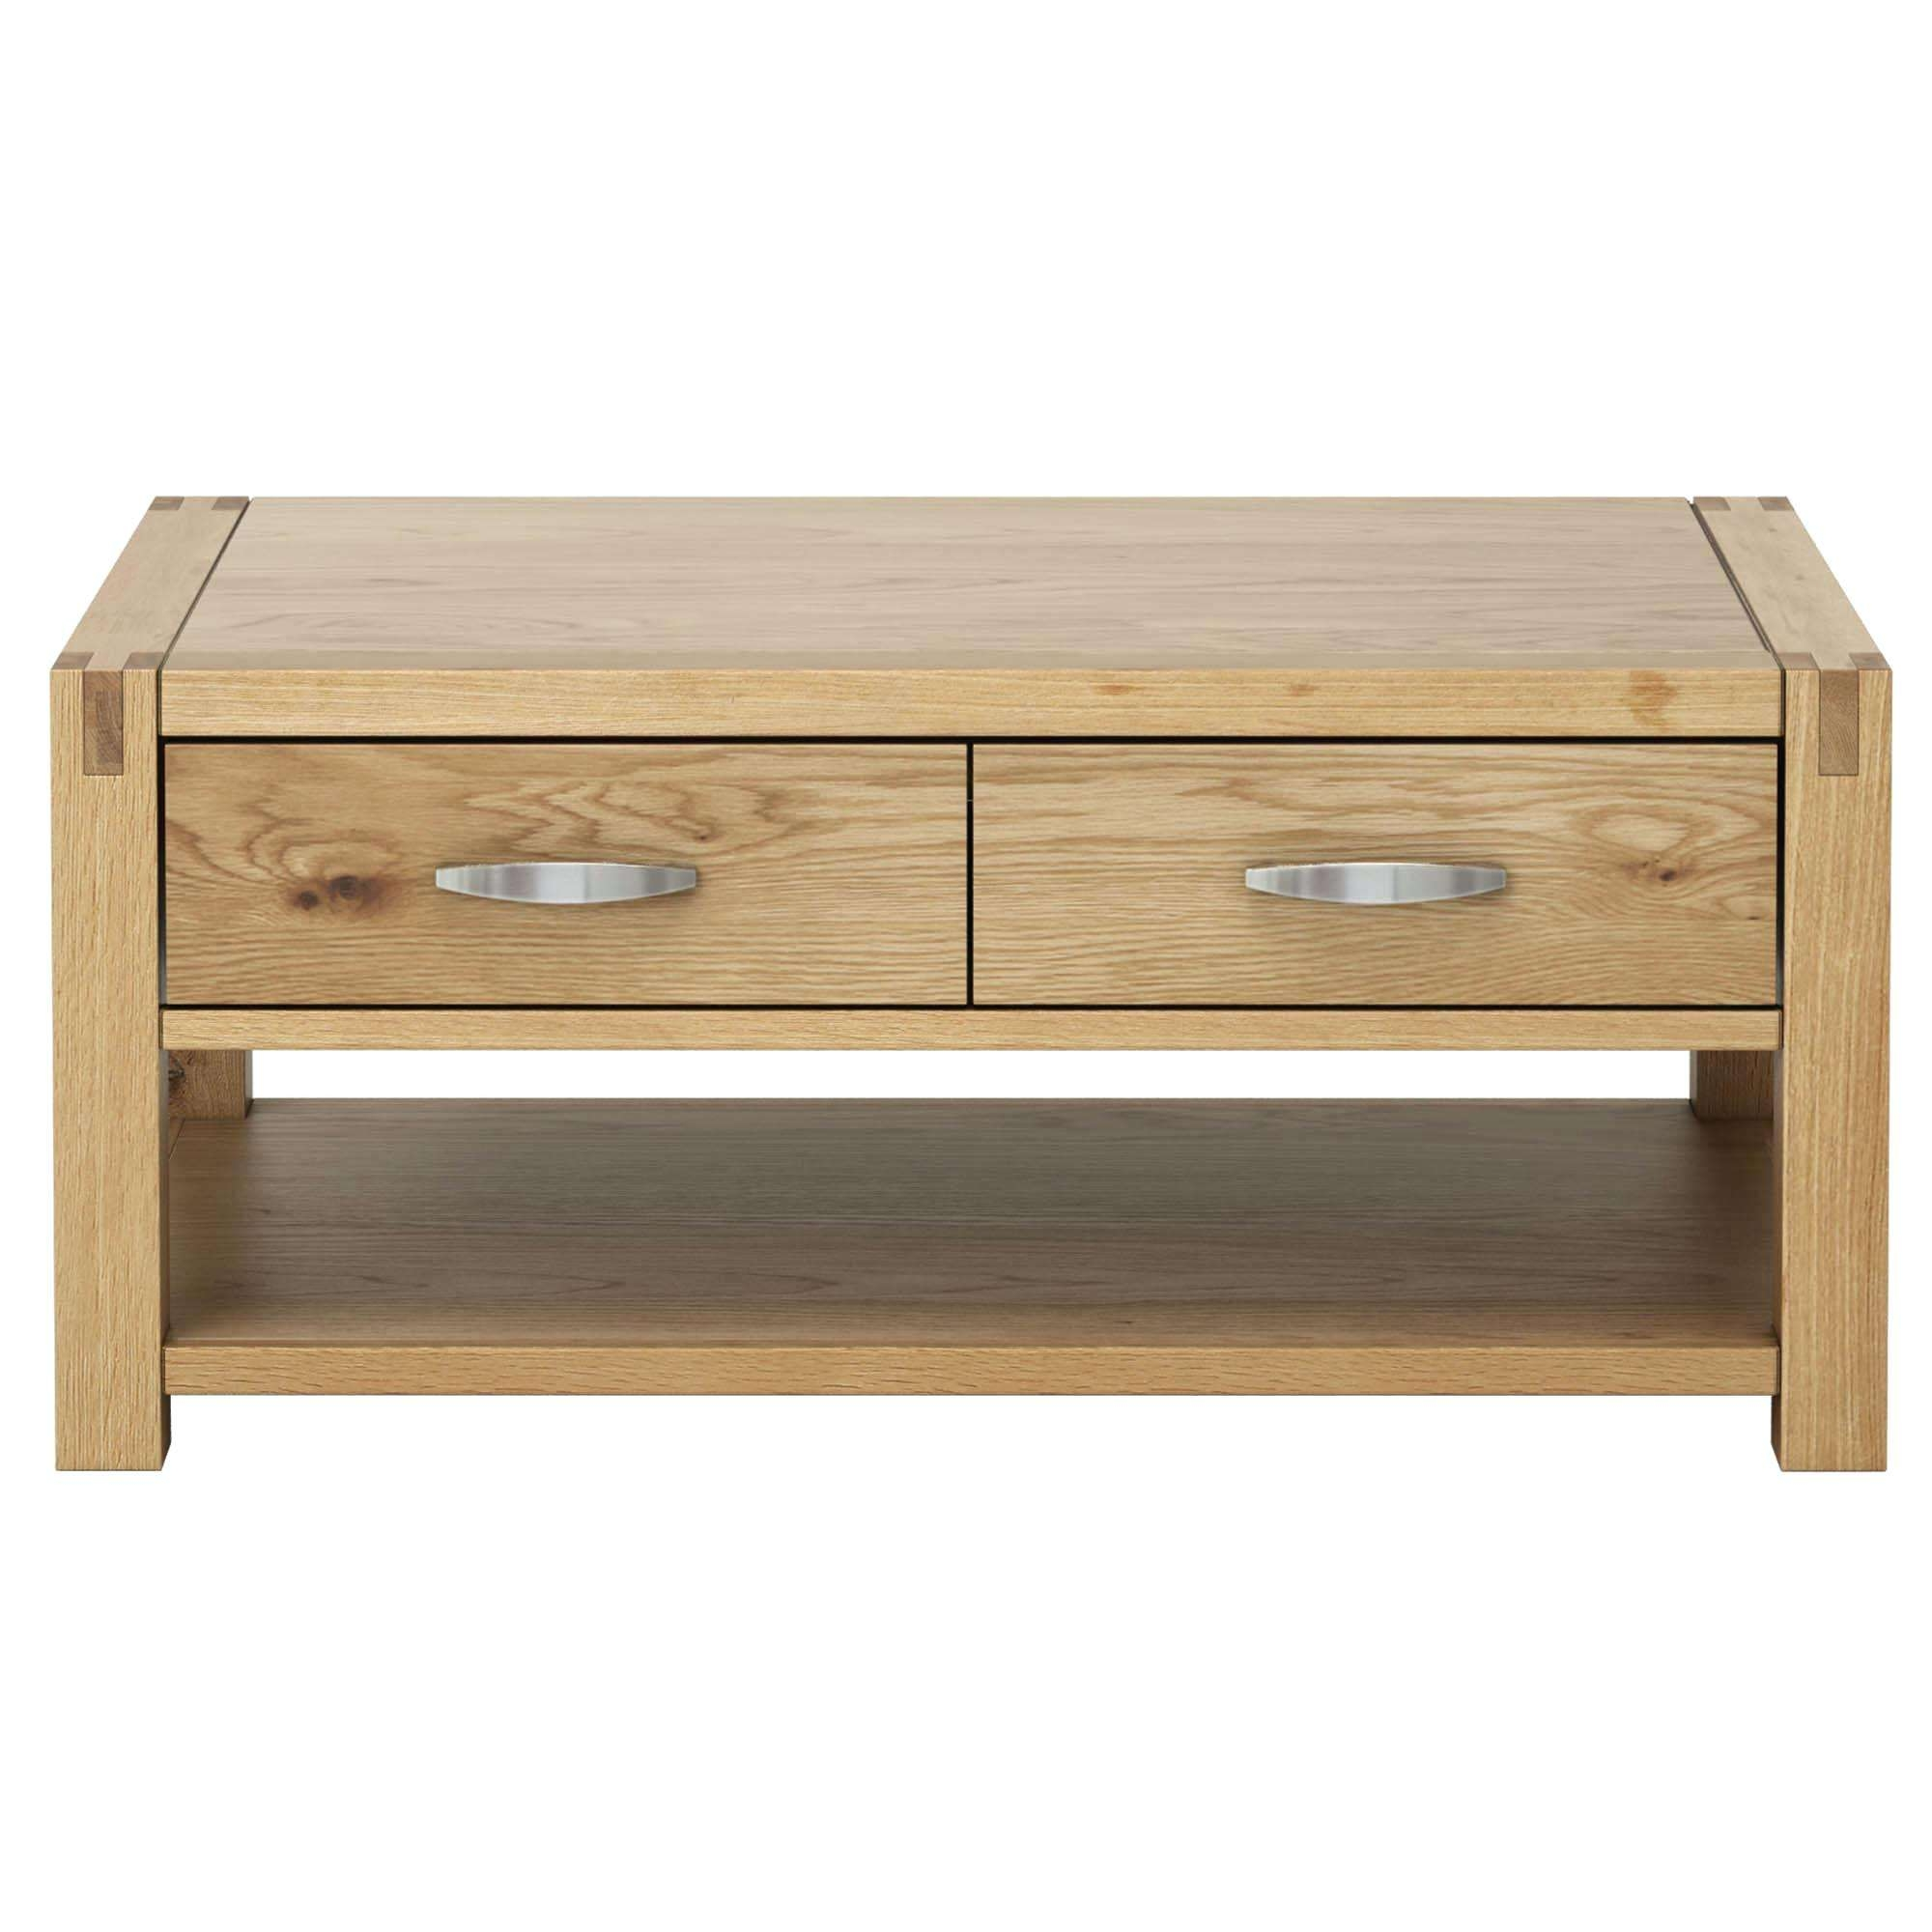 Oak Coffee Tables Oak Beam Coffee Table Ireland – Fieldofscreams Within Best And Newest Oak Coffee Table With Drawers (View 16 of 20)